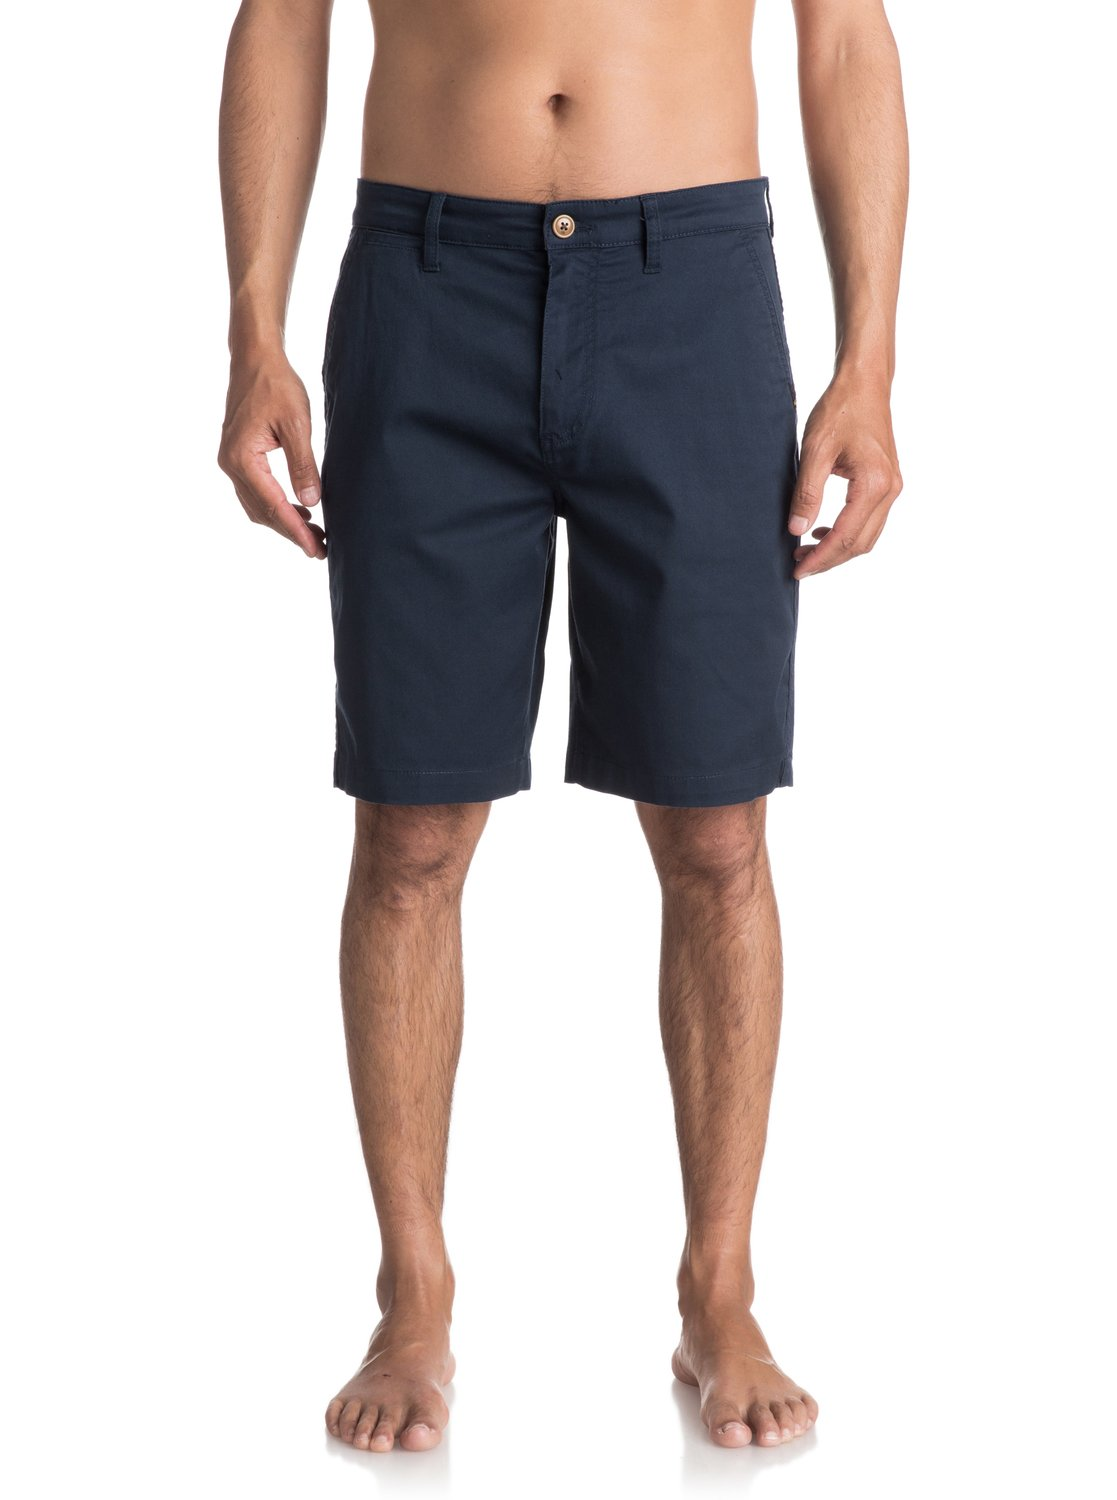 Get the great Chino Shorts you like, such as Men's Chino Shorts, Women's Chino Shorts and more, today at Macy's. Macy's Presents: The Edit - A curated mix of fashion and inspiration Check It Out Free Shipping with $99 purchase + Free Store Pickup.